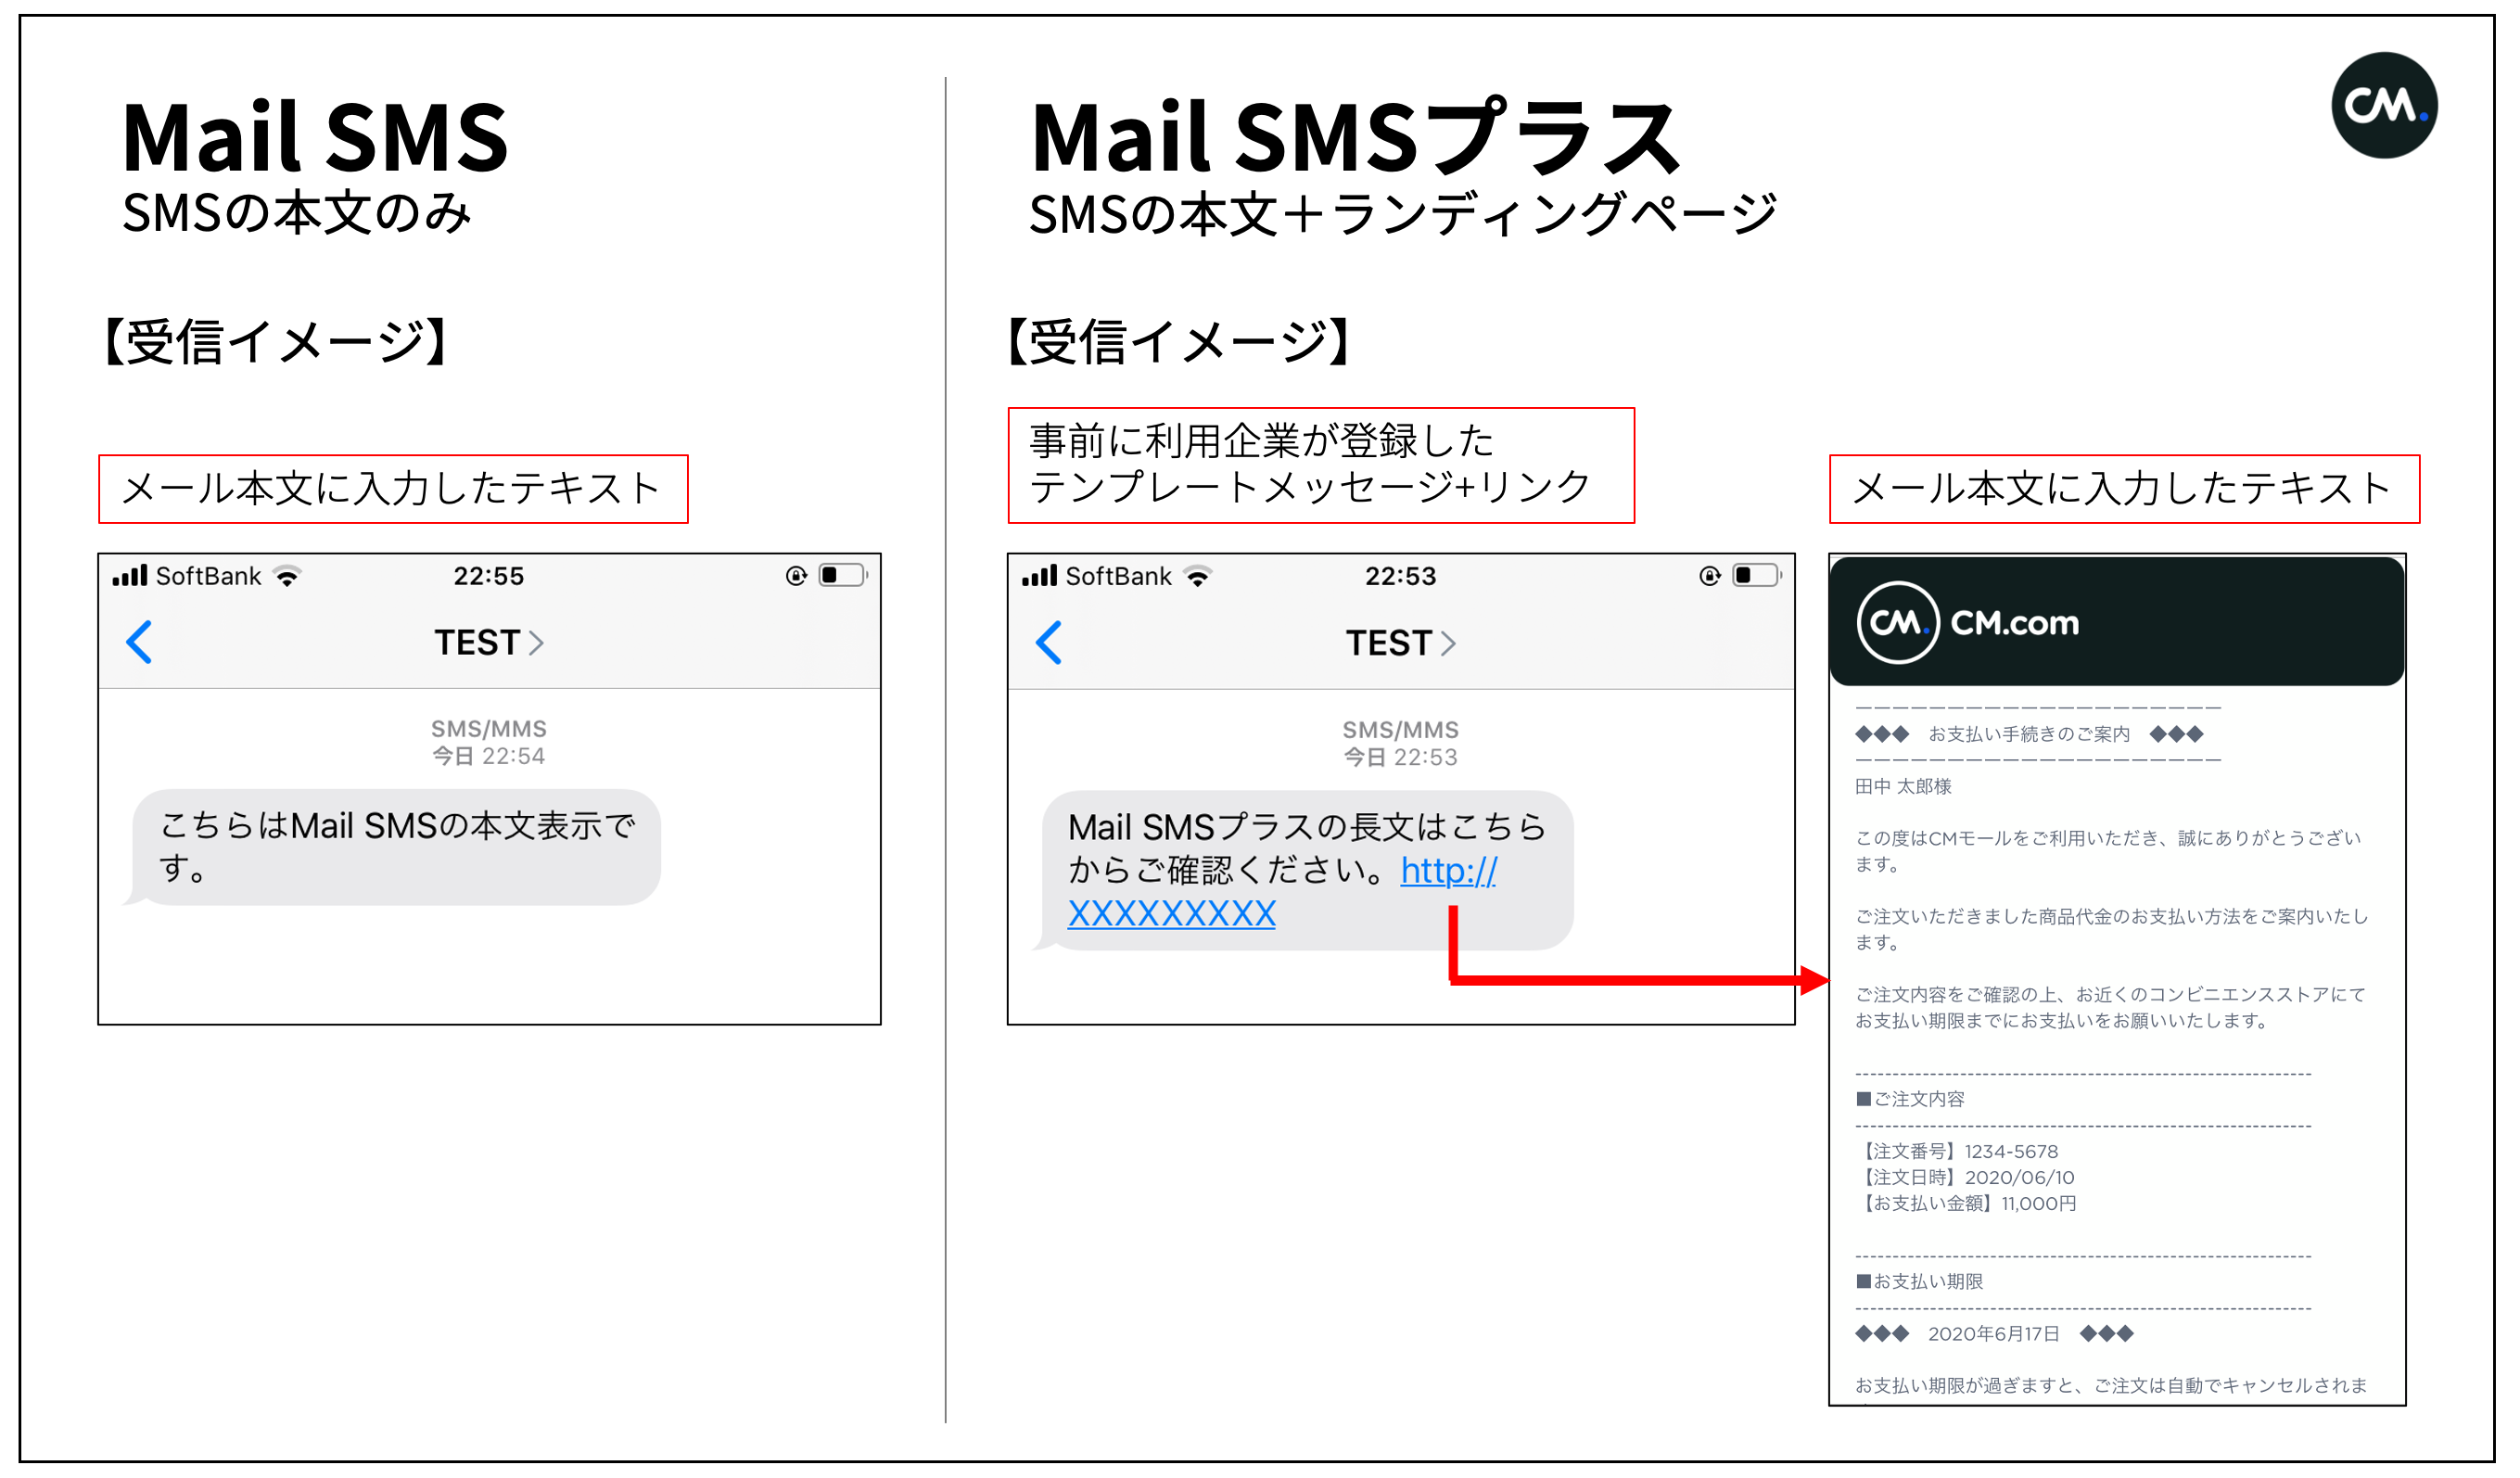 Mail SMSとMail SMSプラスの違い